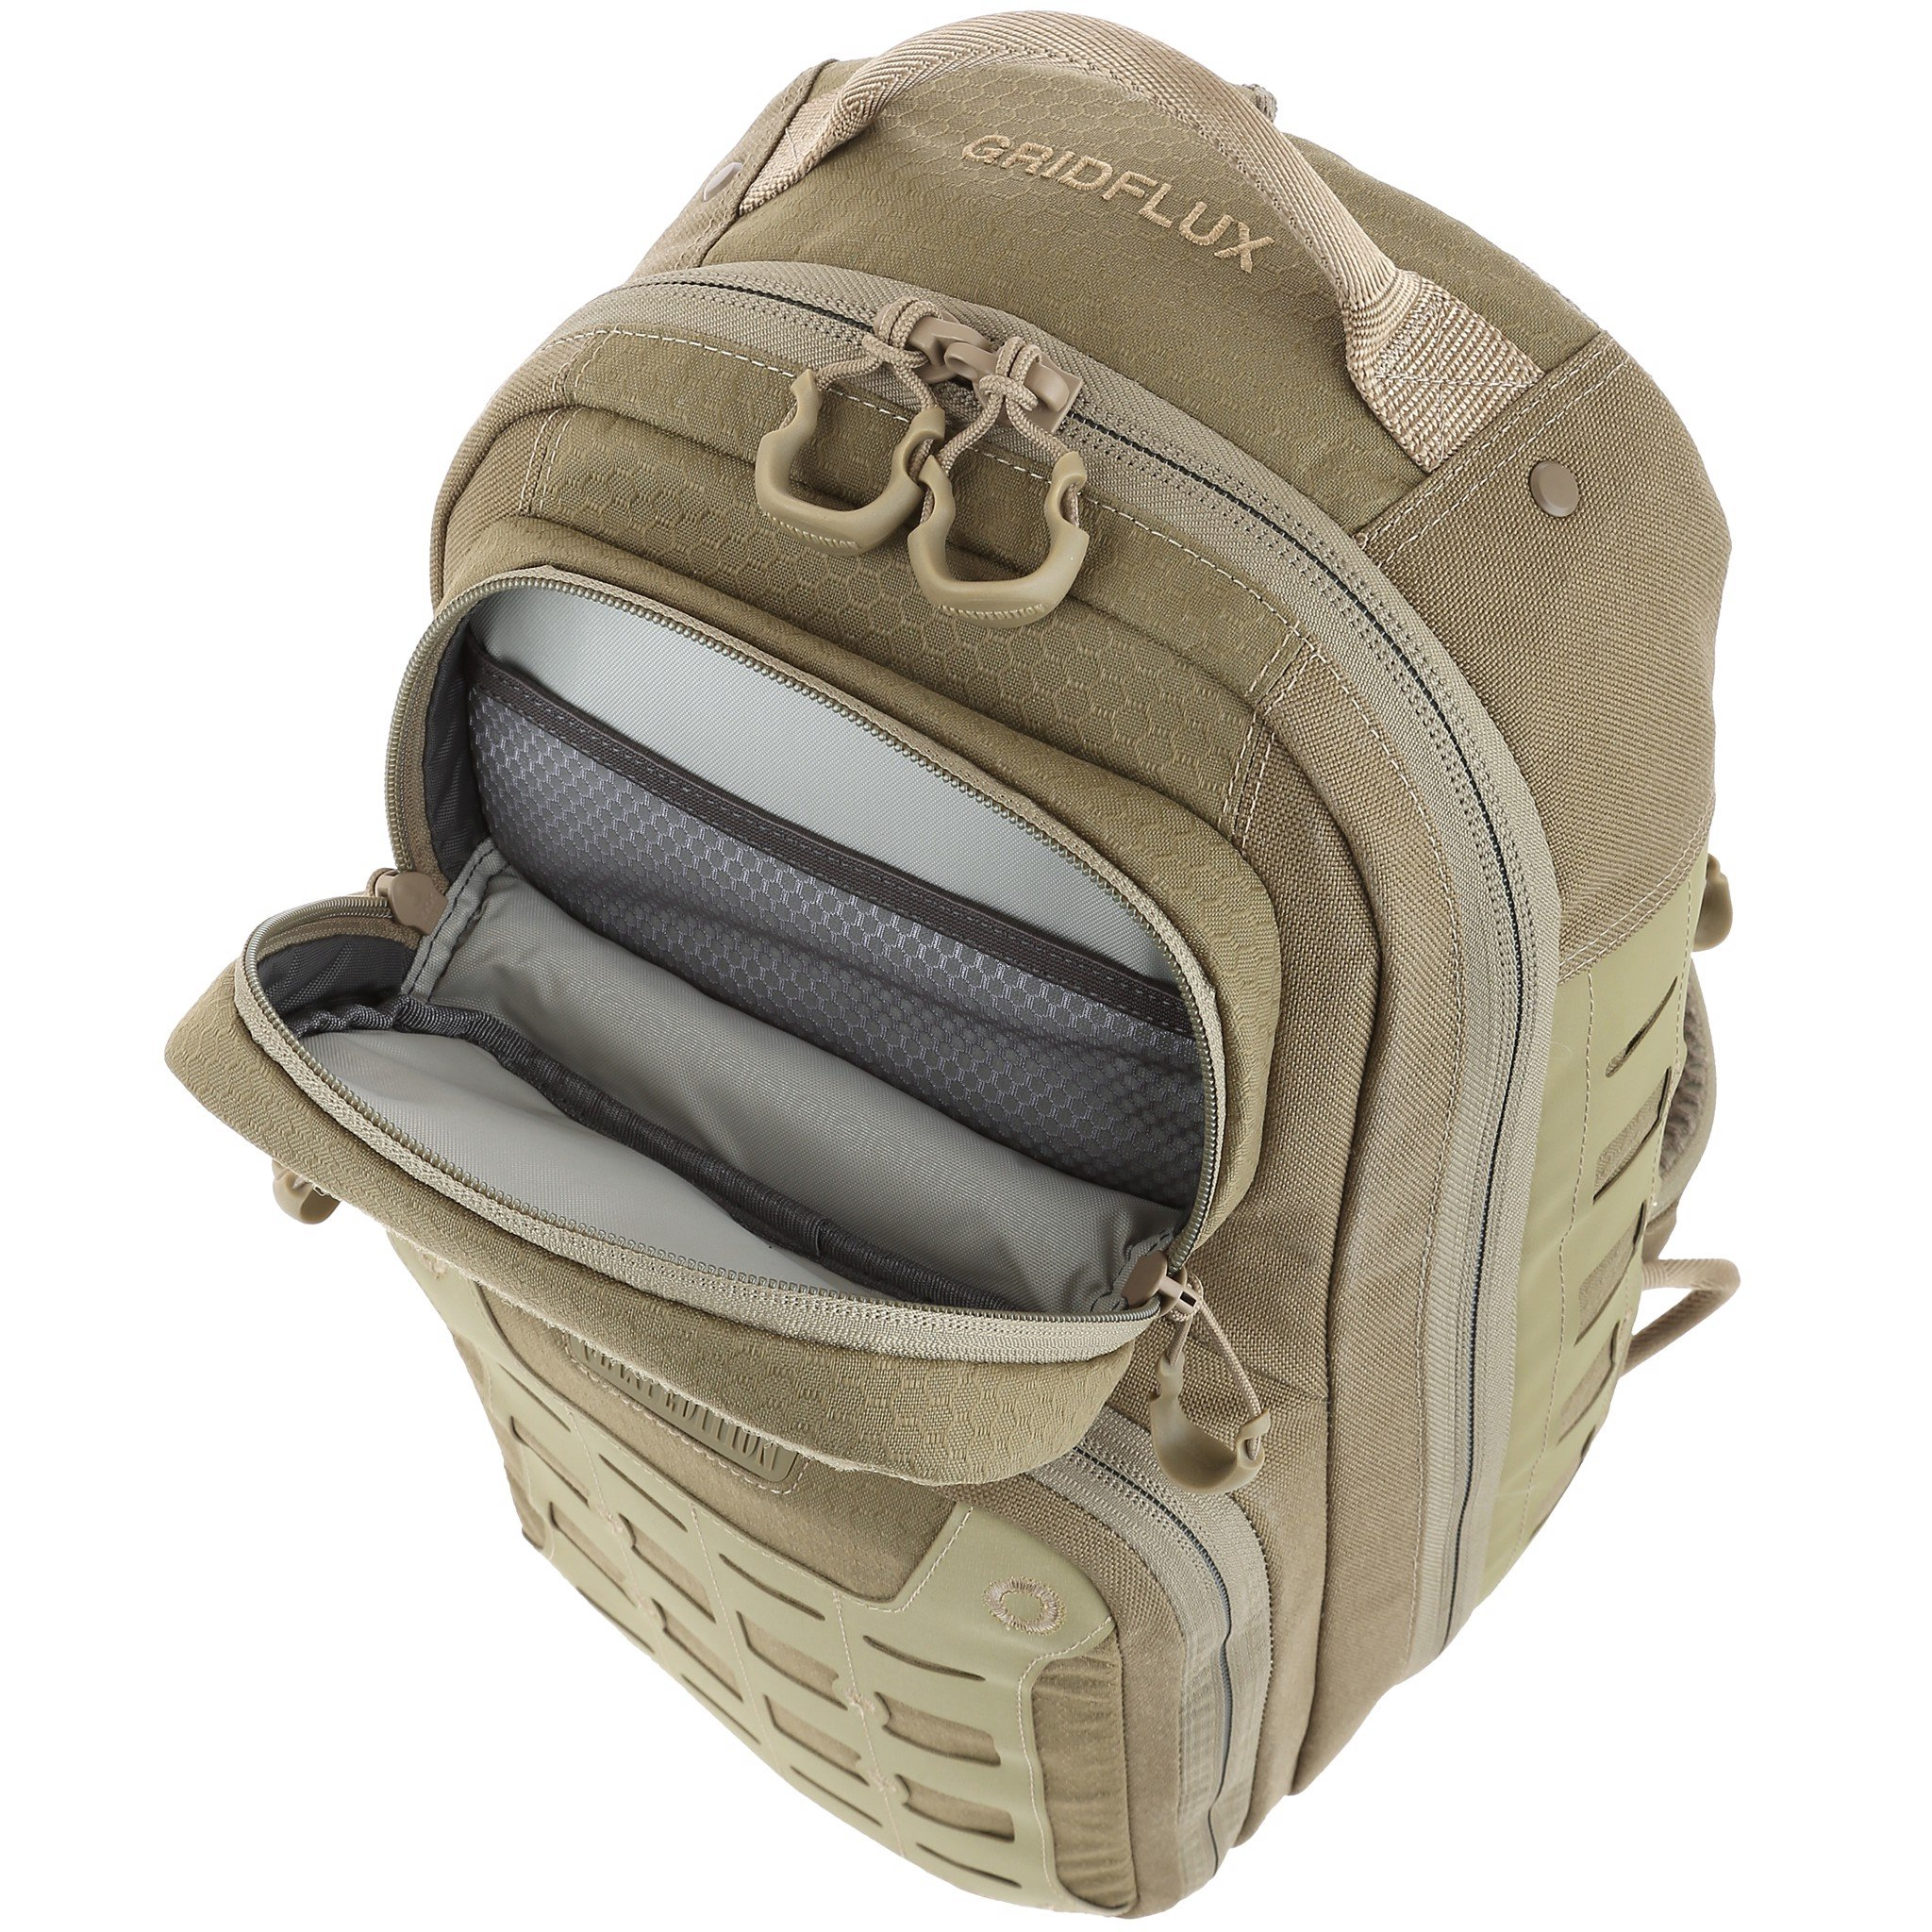 Balo Maxpedition GRIDFLUX v2.0  – Gray